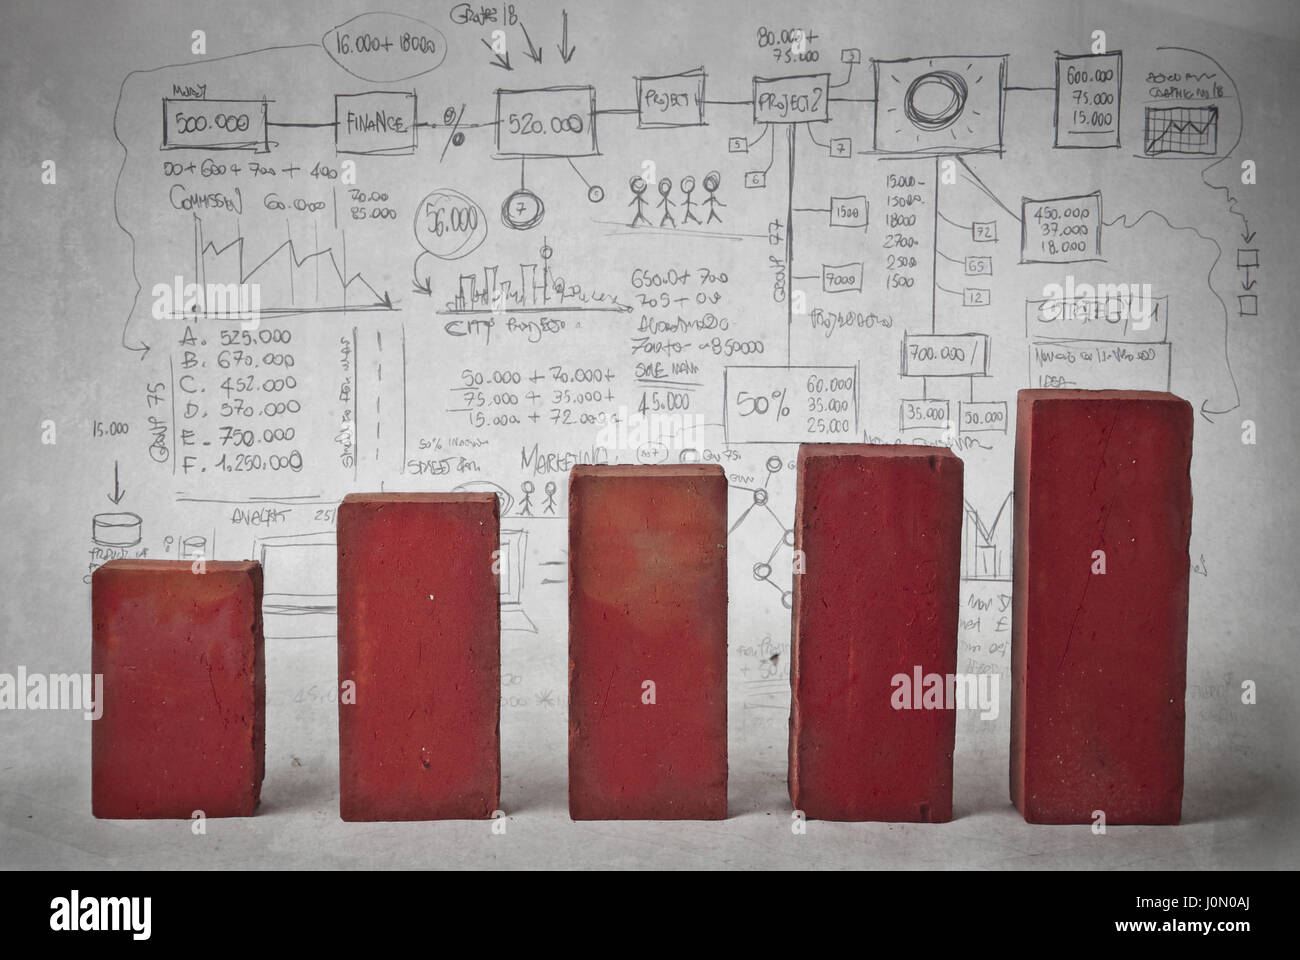 Statistic and business plans - Stock Image